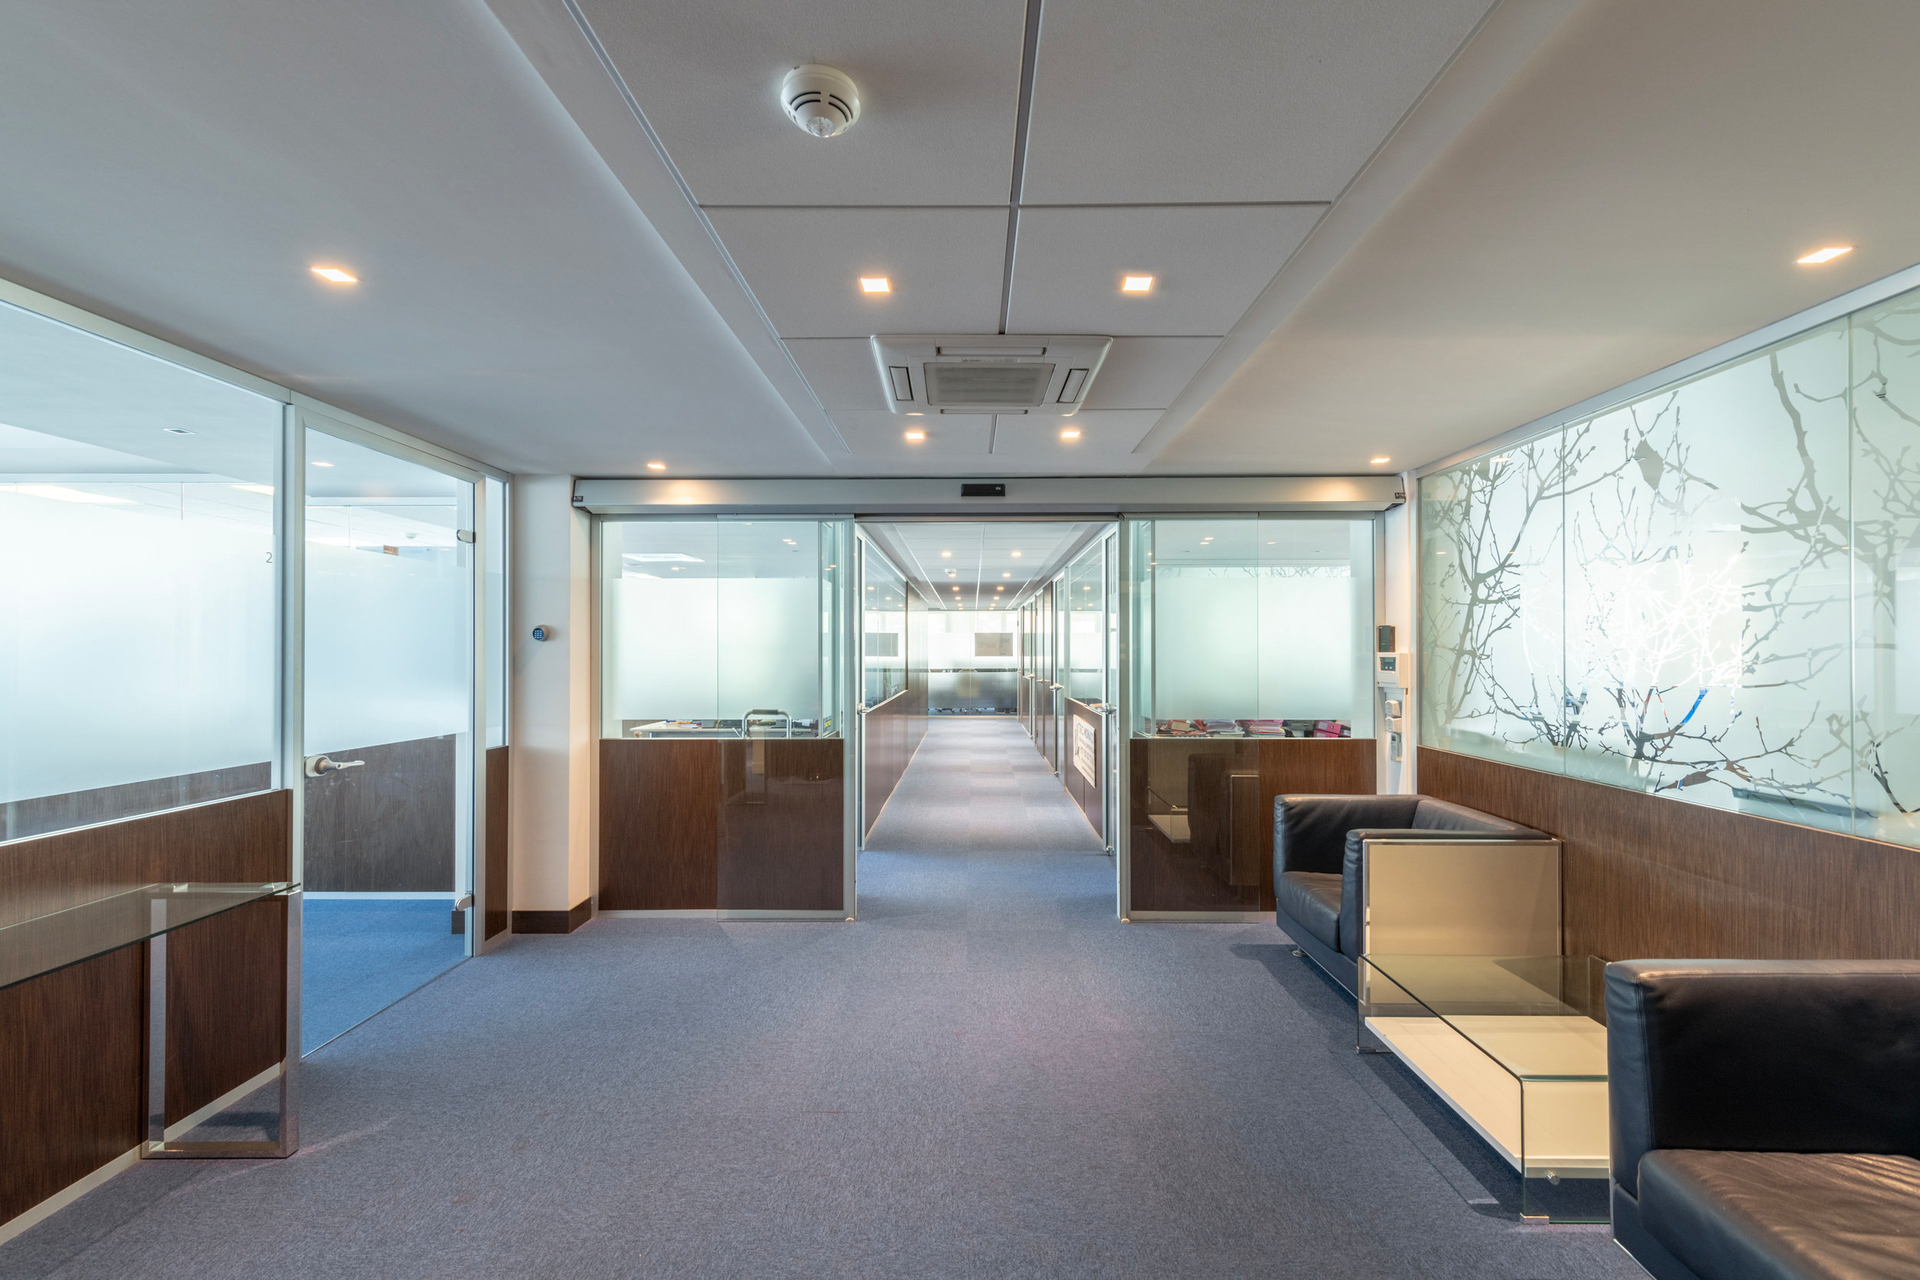 Fontvieille-le Thales offices - Offices for sale in Monaco